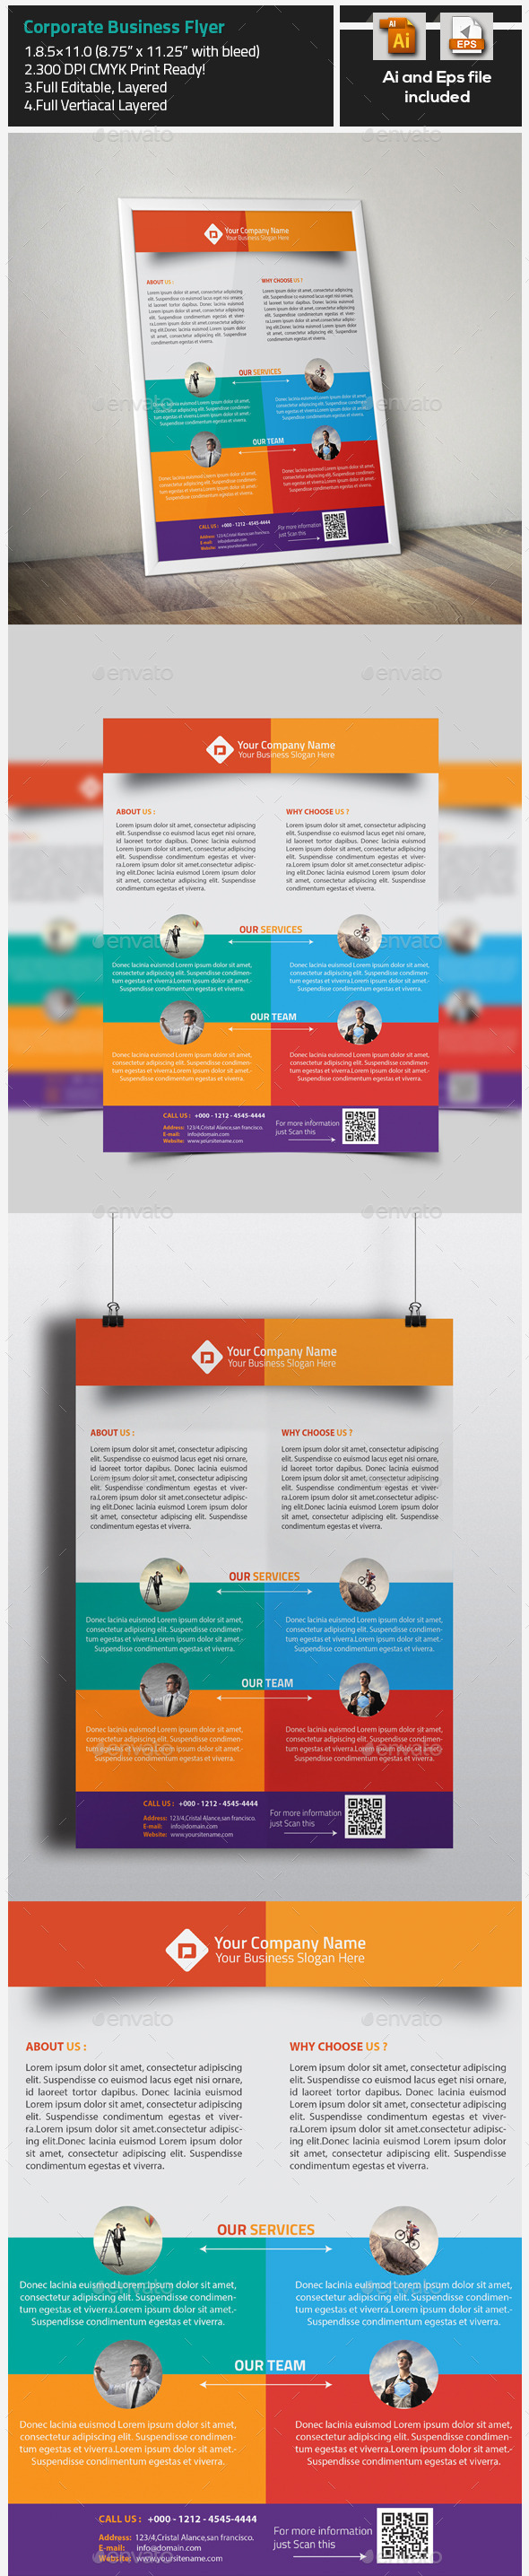 GraphicRiver Corporate Creative Business Flyer 9737669